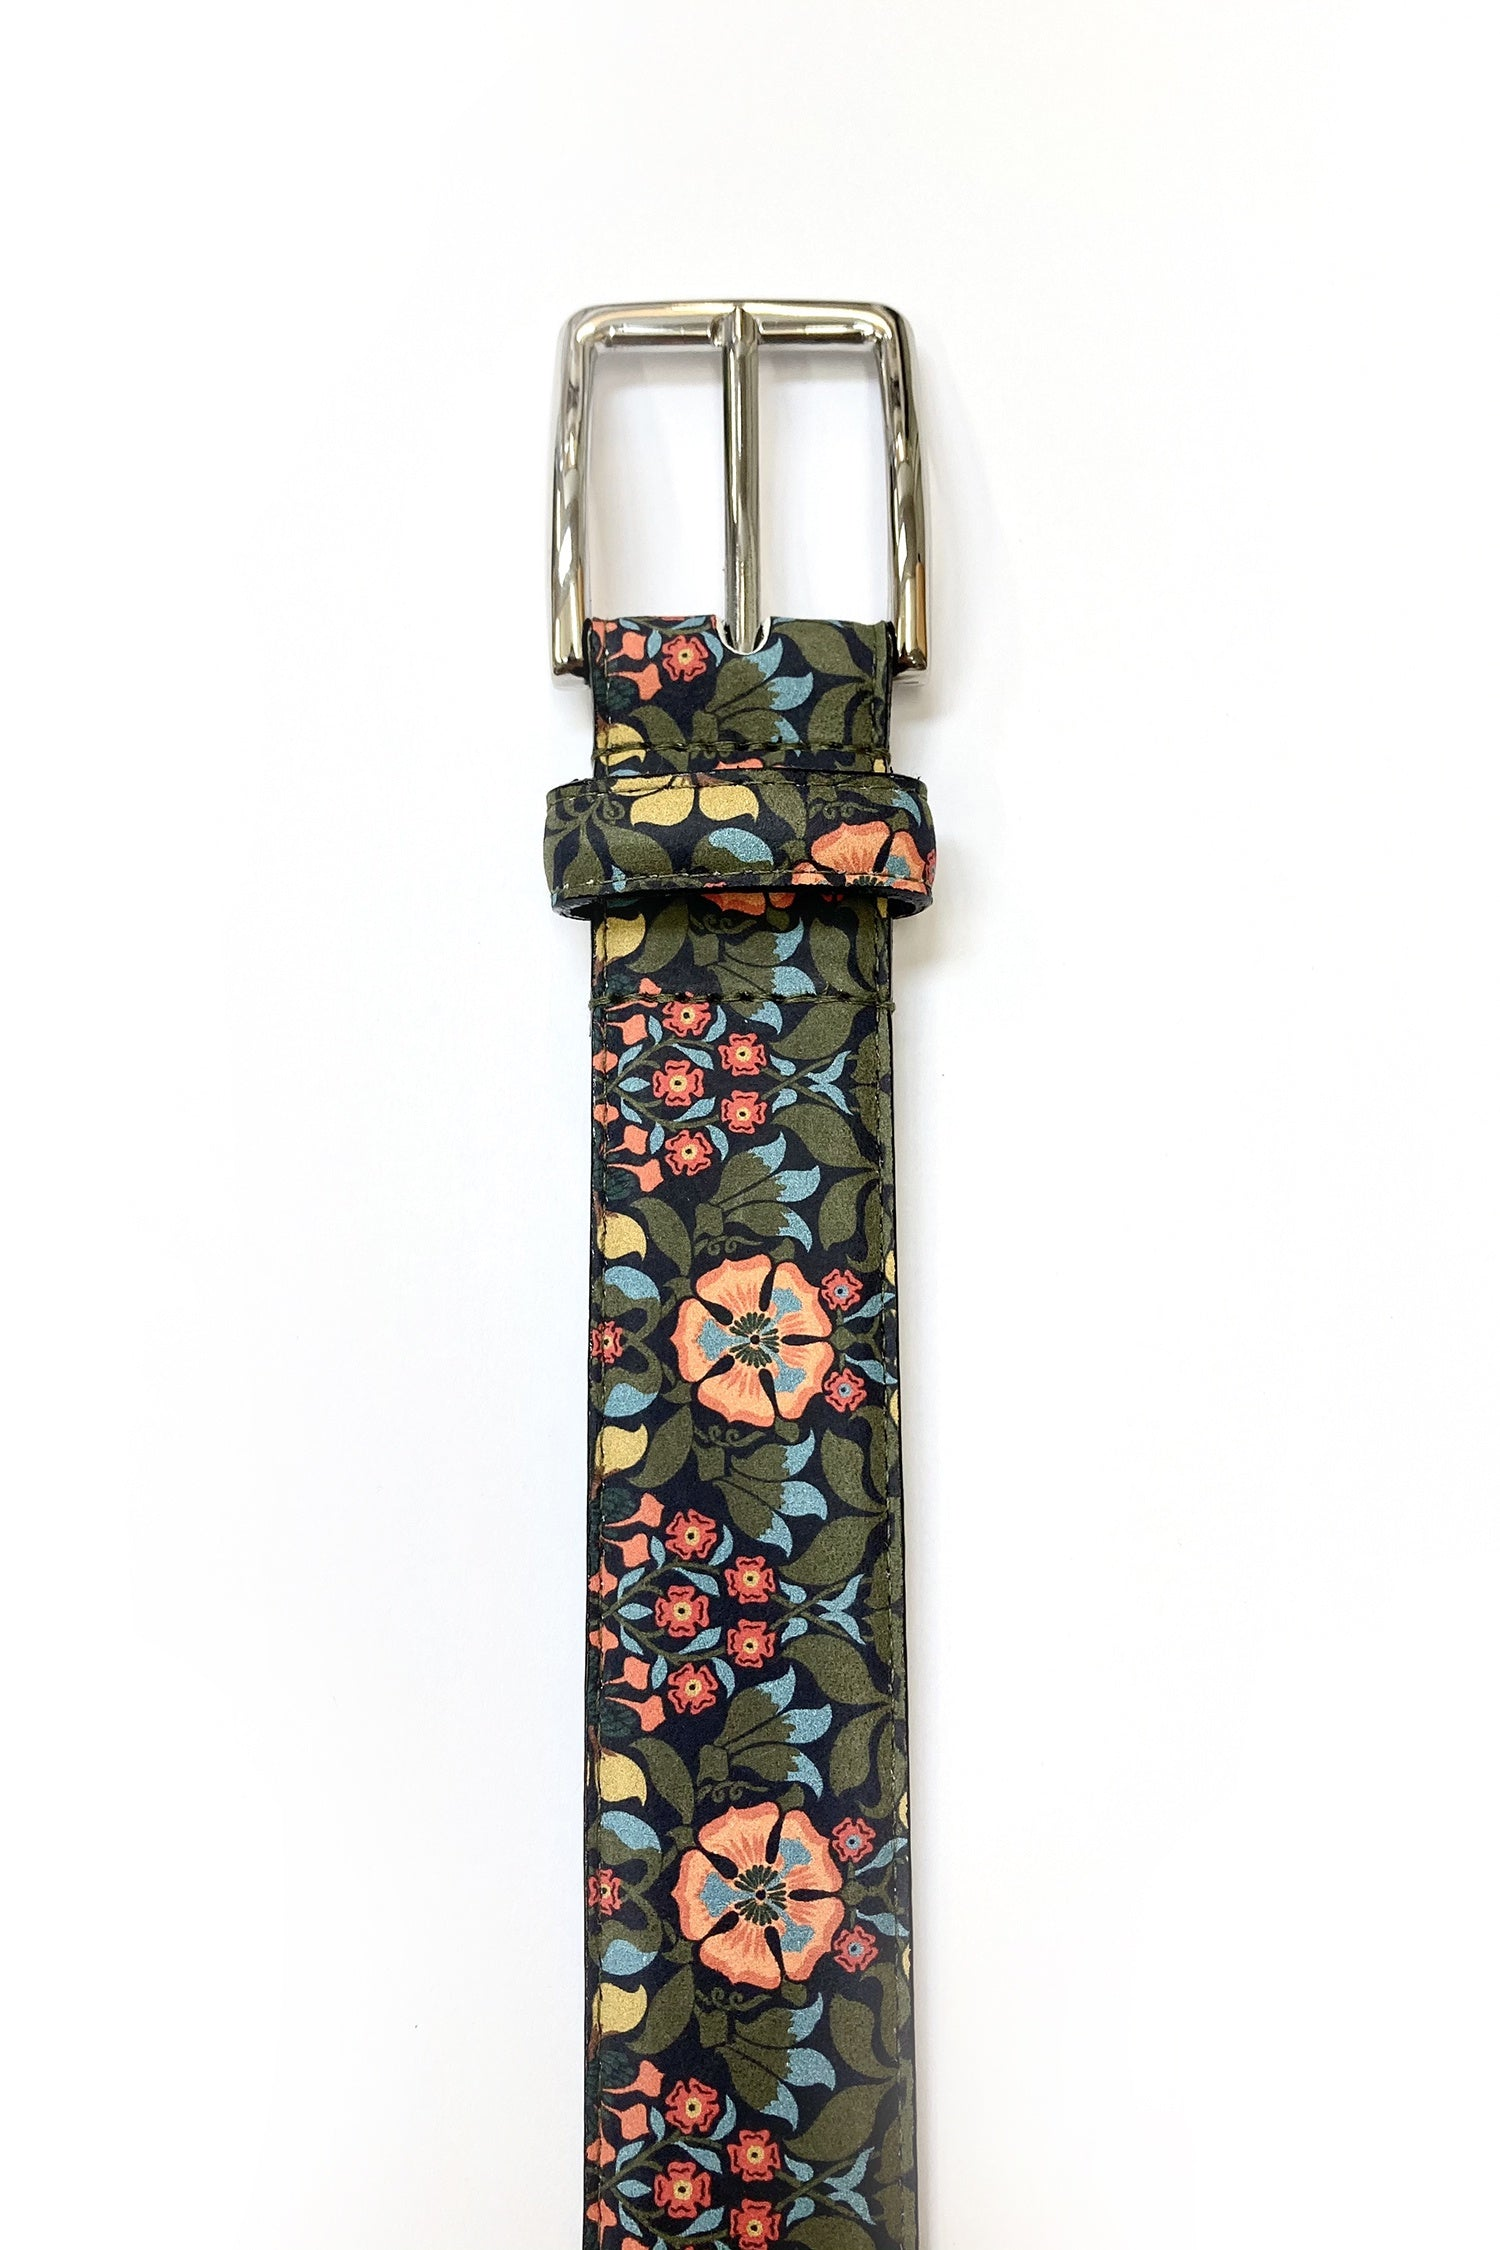 WORLD Liberty Leather Belt - Olive Navy Peach Floral